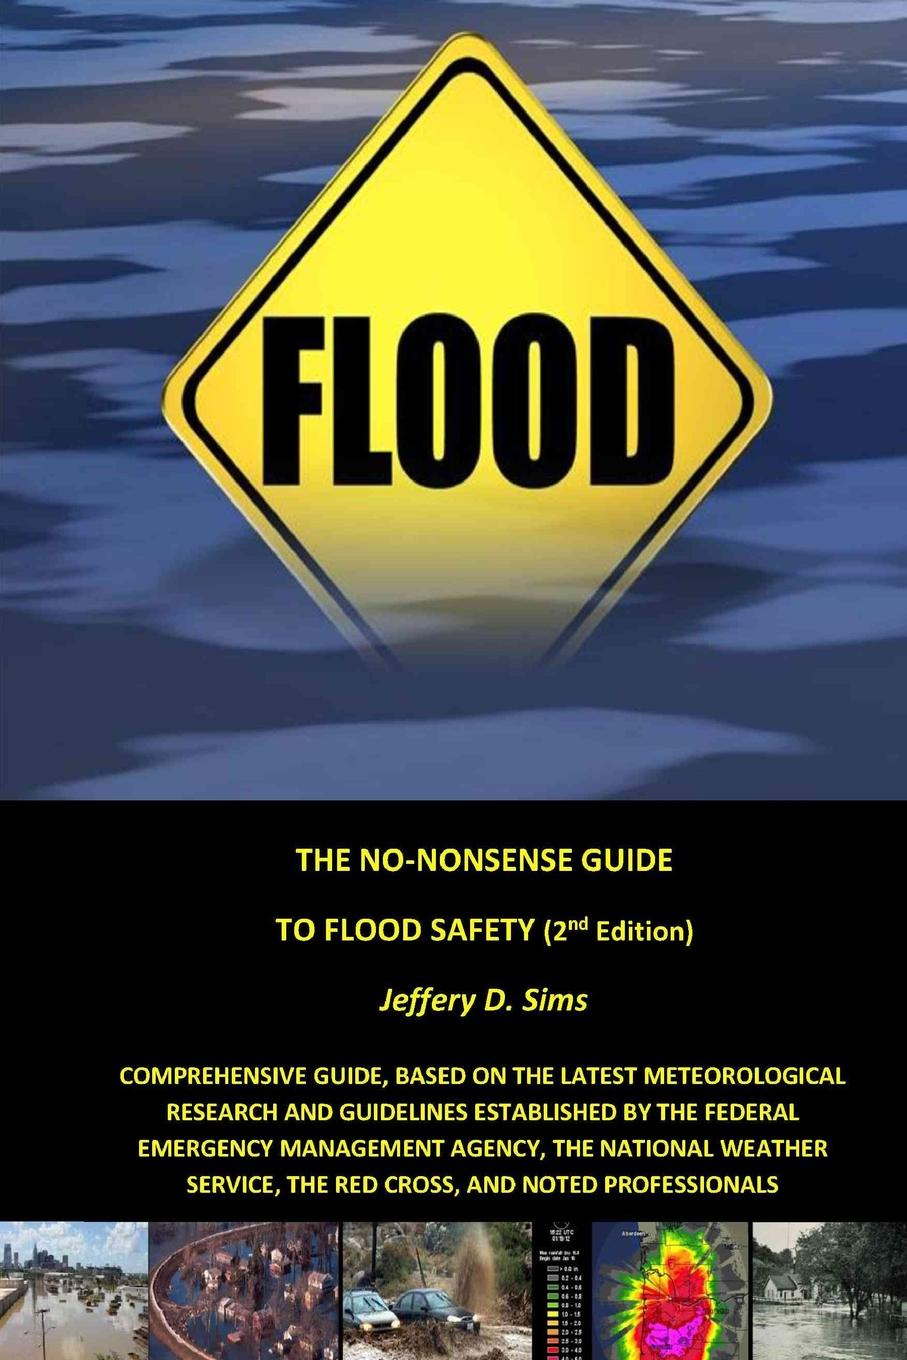 Jeffery Sims The No-Nonsense Guide To Flood Safety surafel mamo woldegbrael flood forecasting conterol and modeling for flood risk management systems